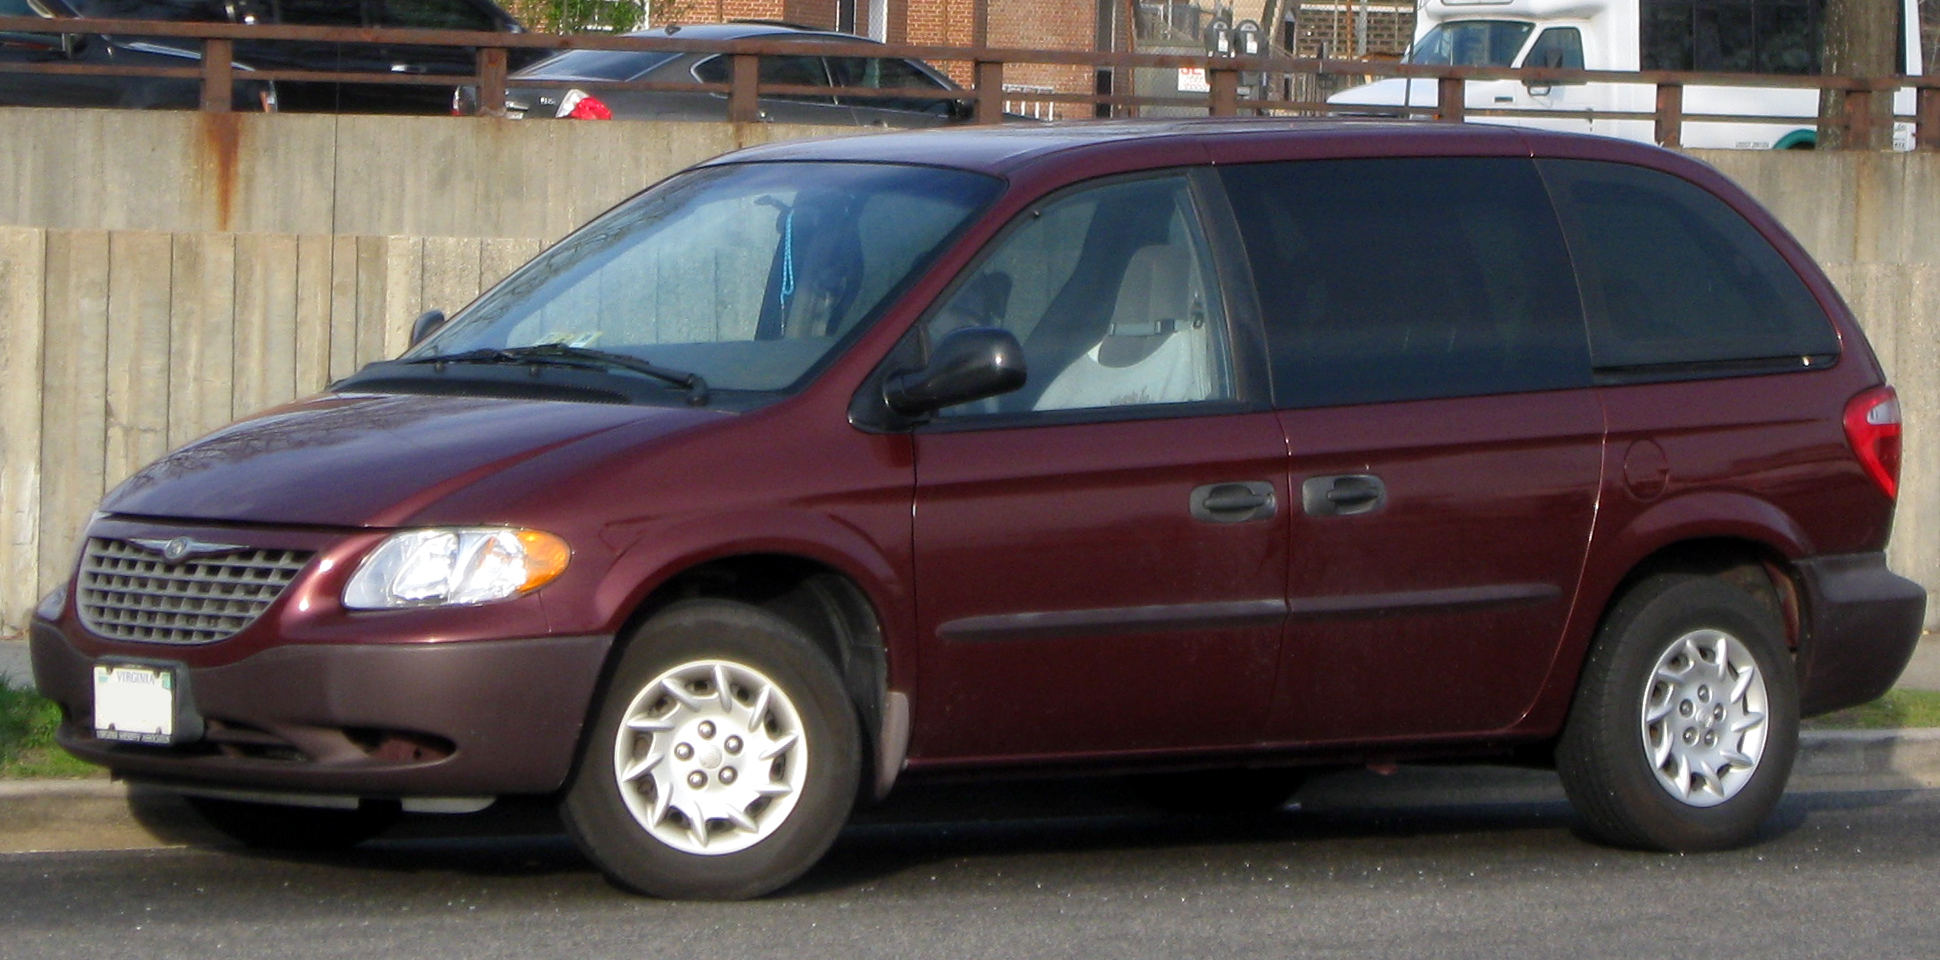 2002 chrysler voyager information and photos zombiedrive. Black Bedroom Furniture Sets. Home Design Ideas